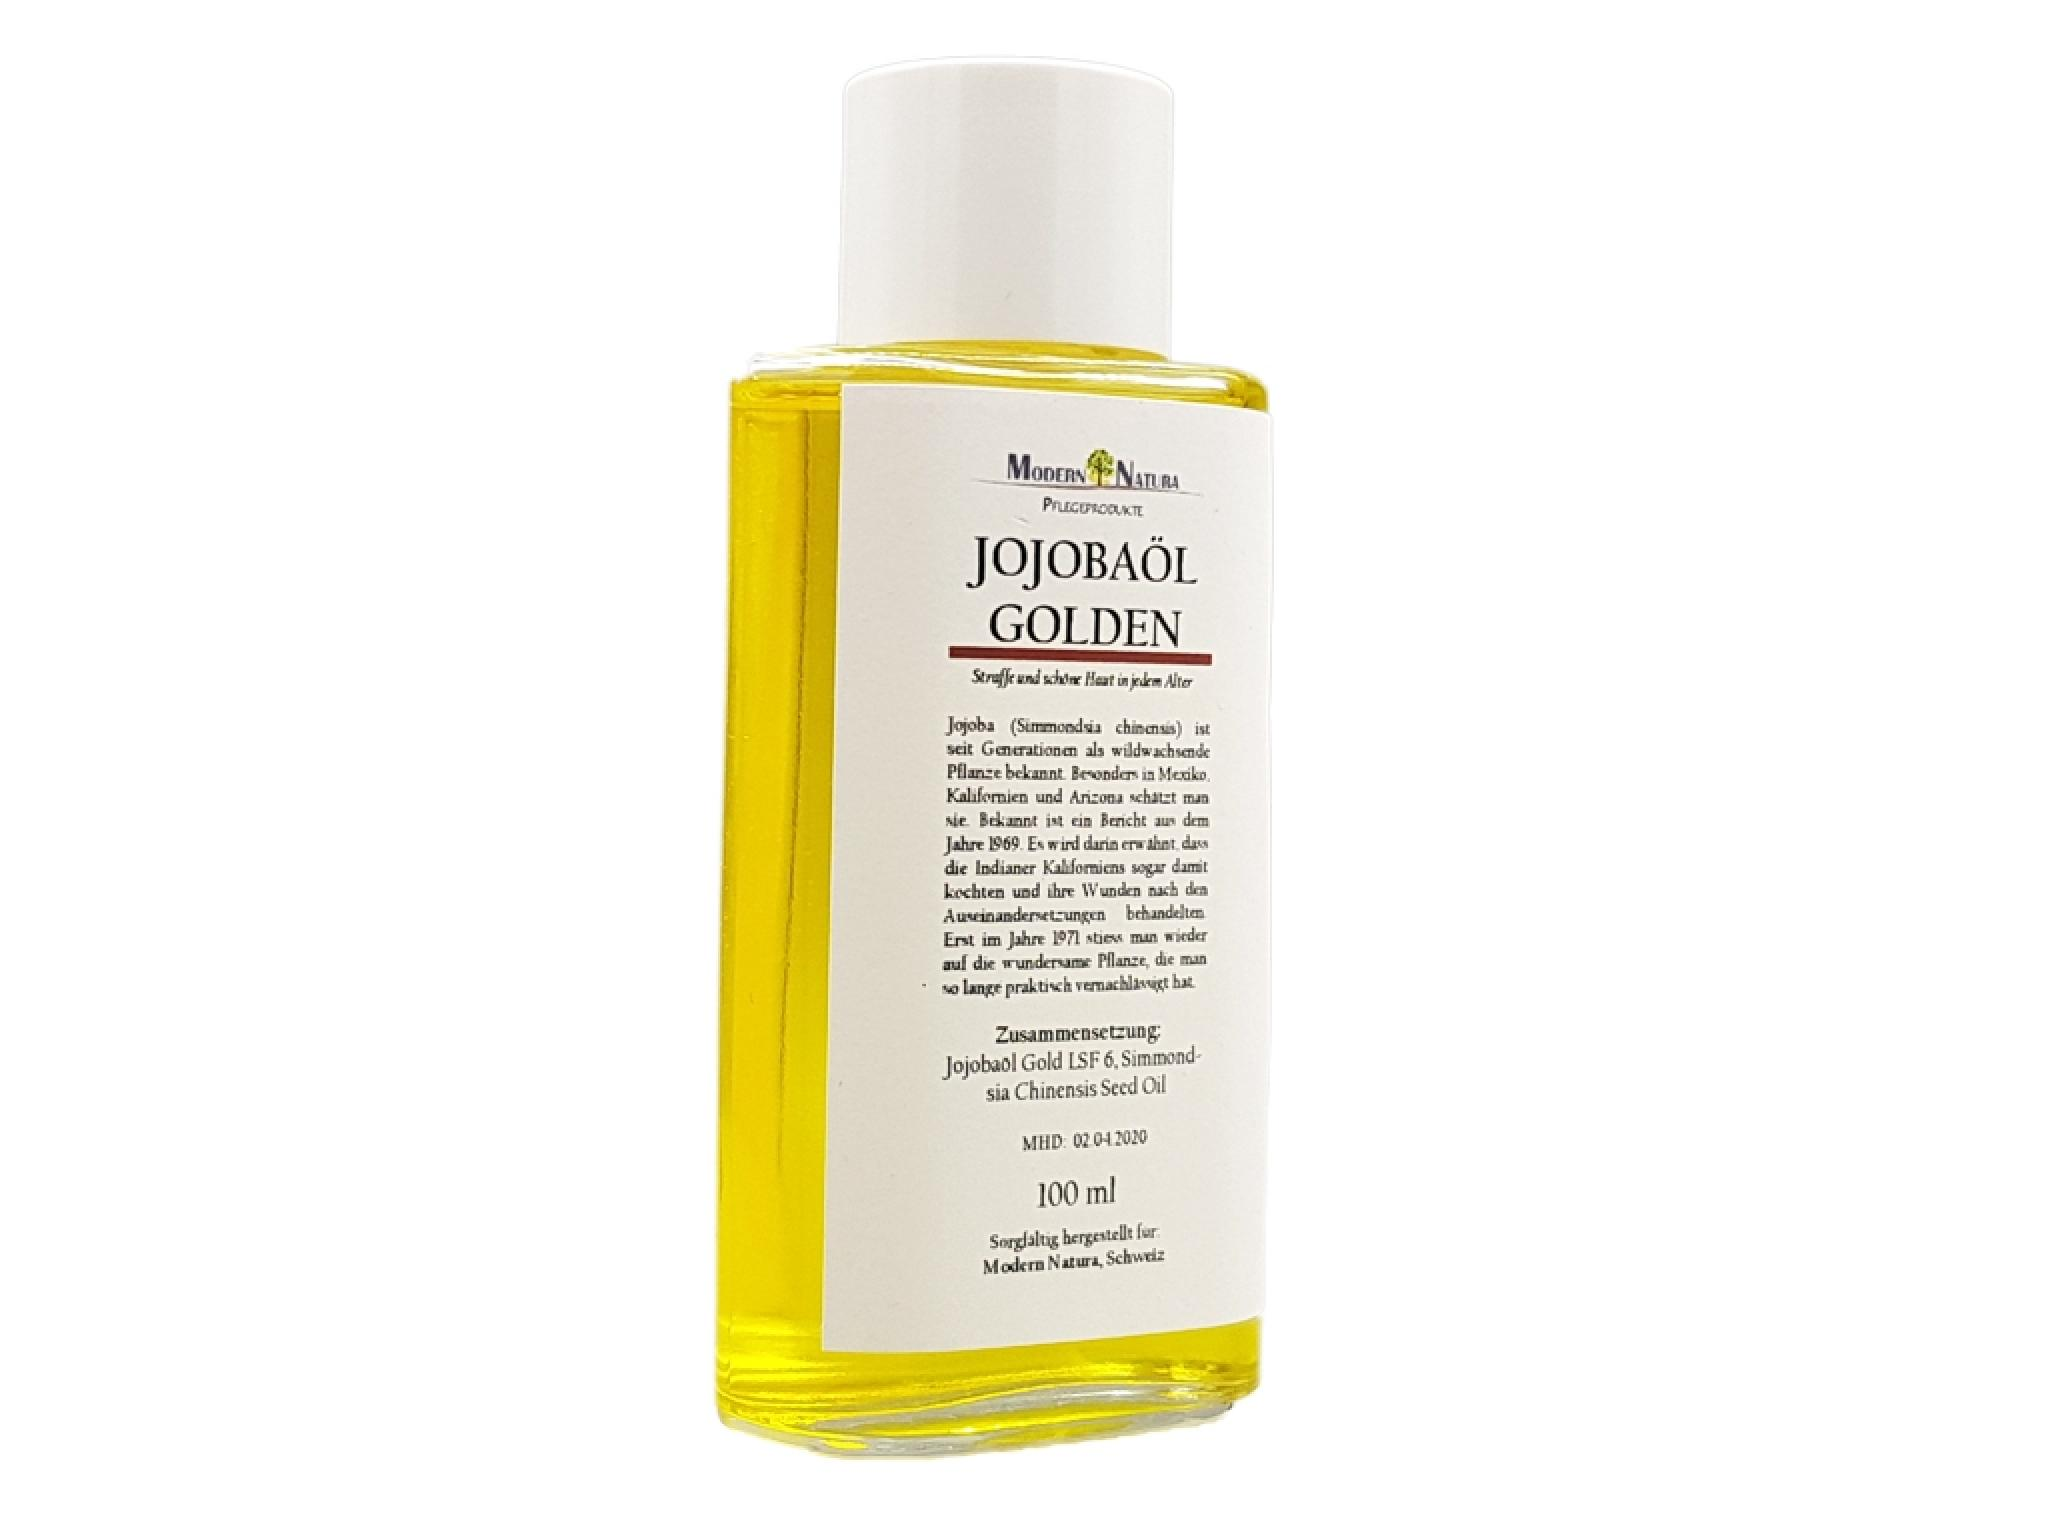 Jojobaöl Golden - 100ml